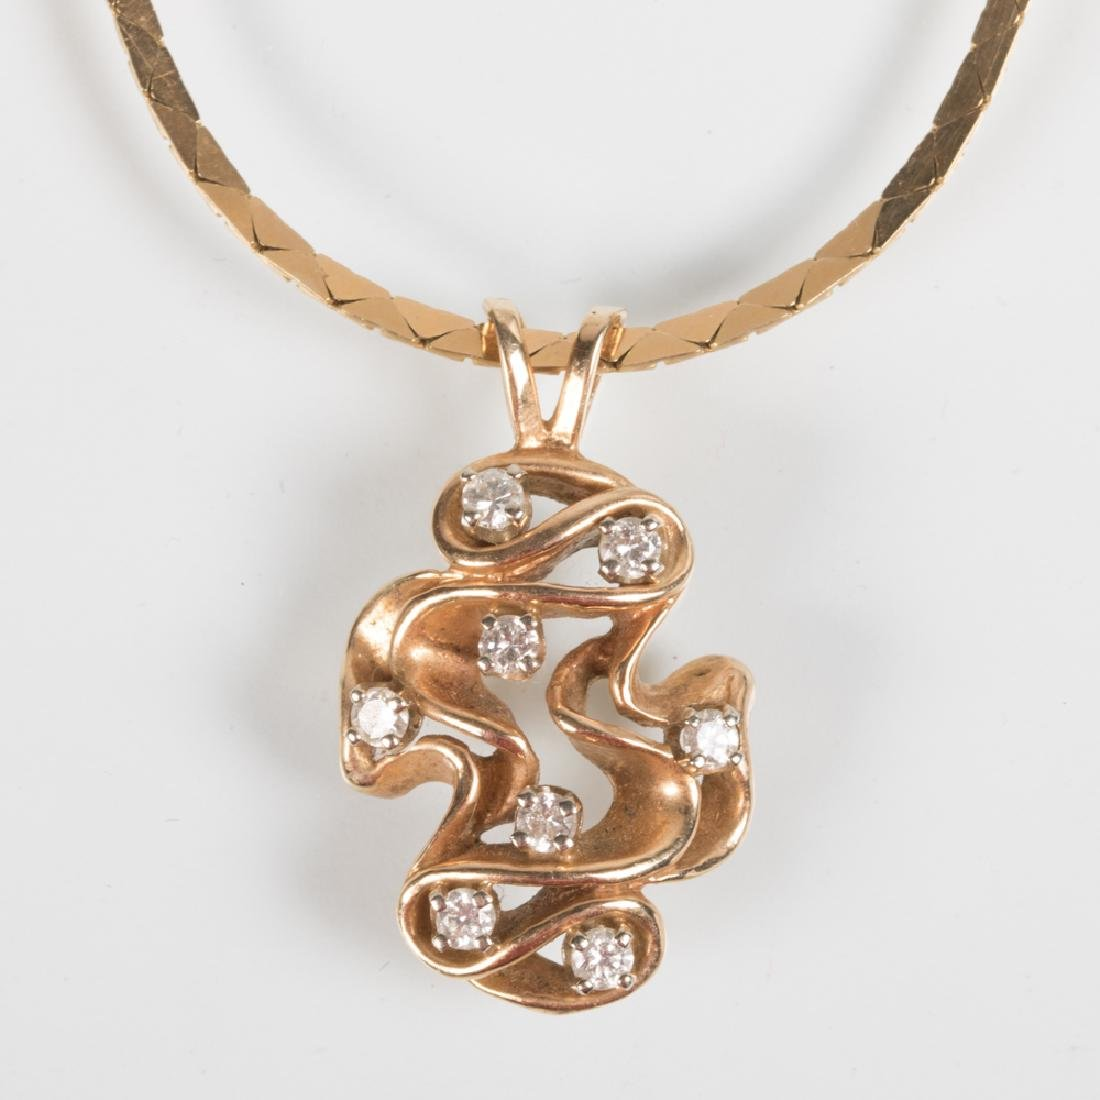 A 14kt. Yellow Gold and Diamond Pendant,